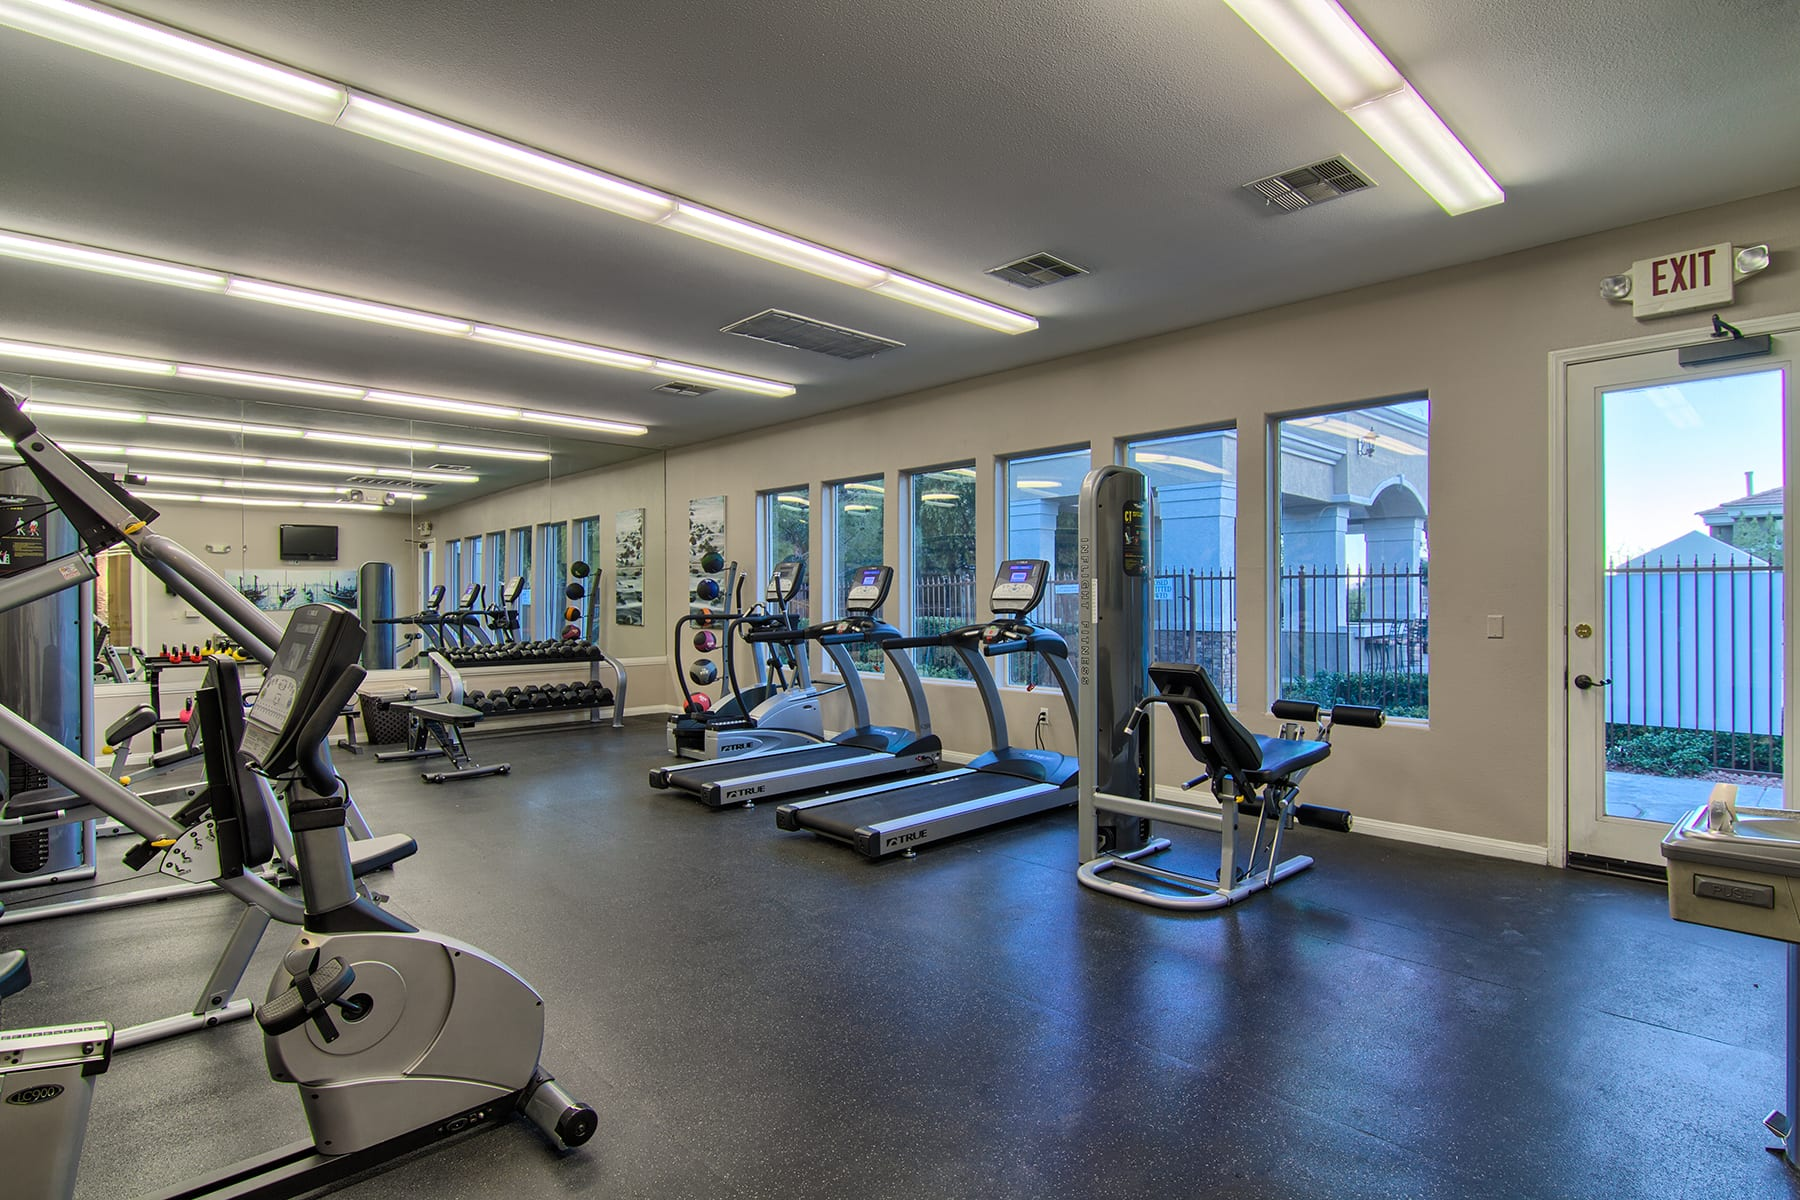 The Viviani fitness center with rows of cardio machines and weight lifting equipment.